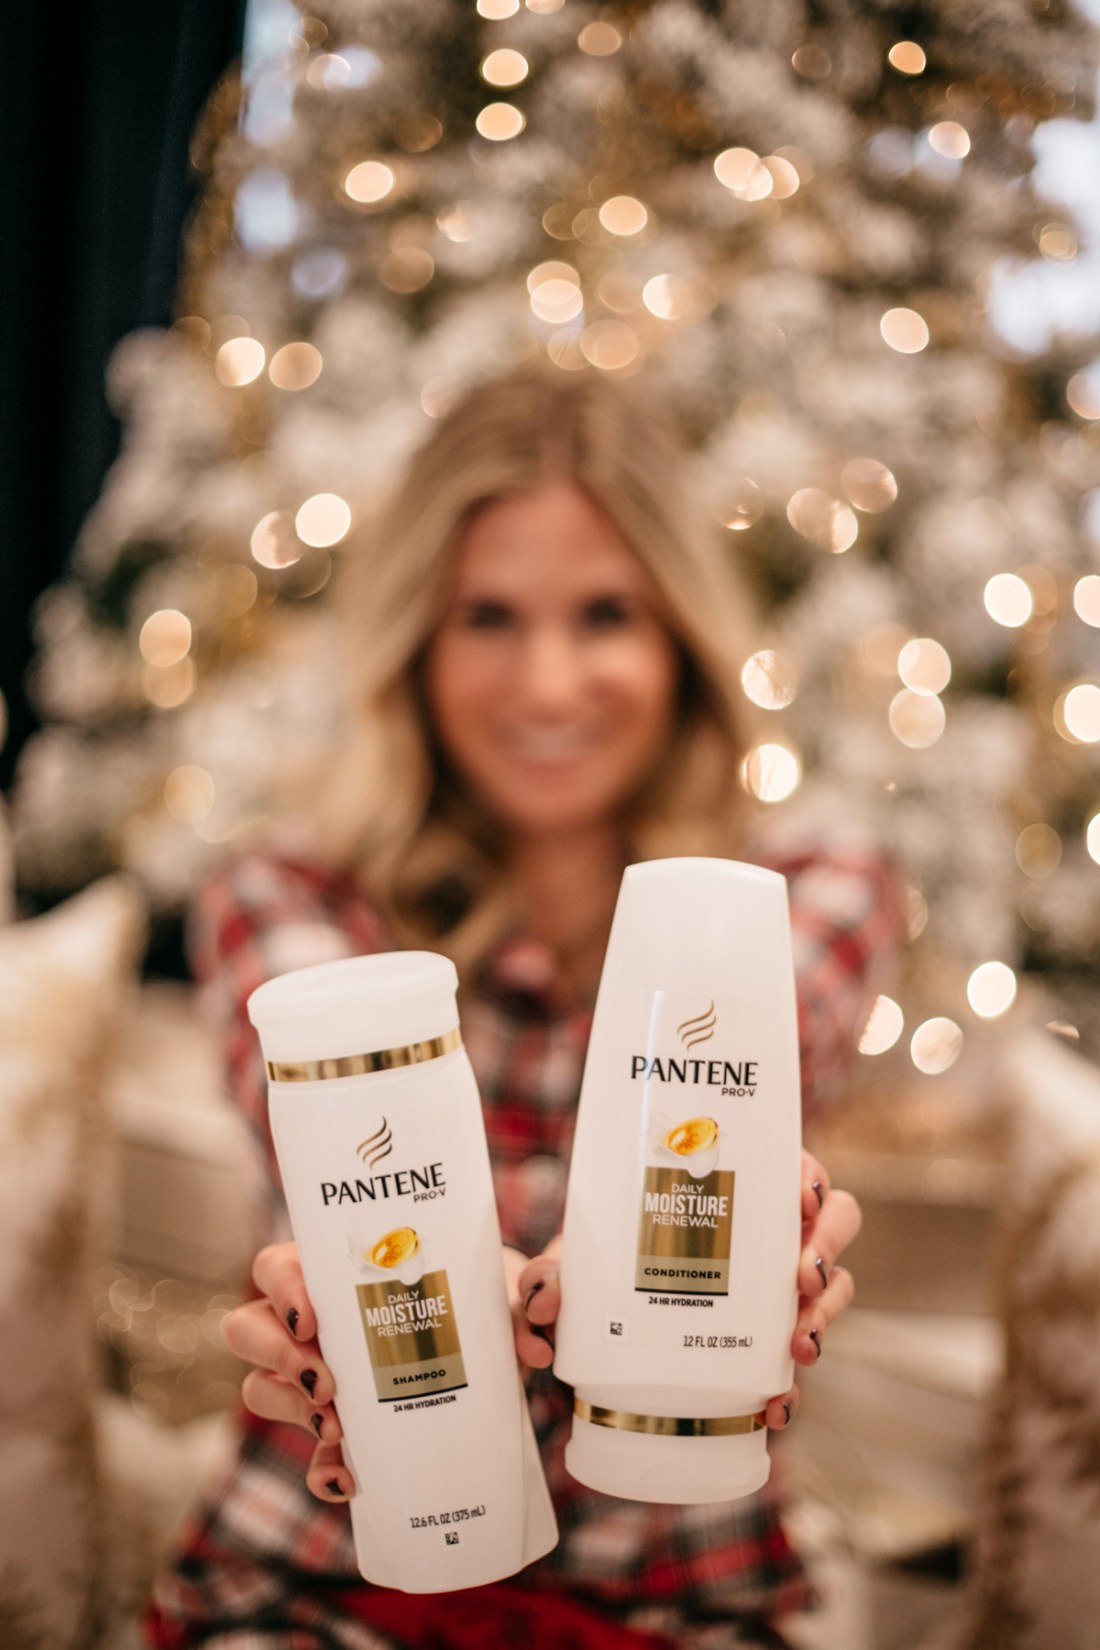 One Small Blonde - Pantene Daily Moisture Renewal Shampoo and Conditioner